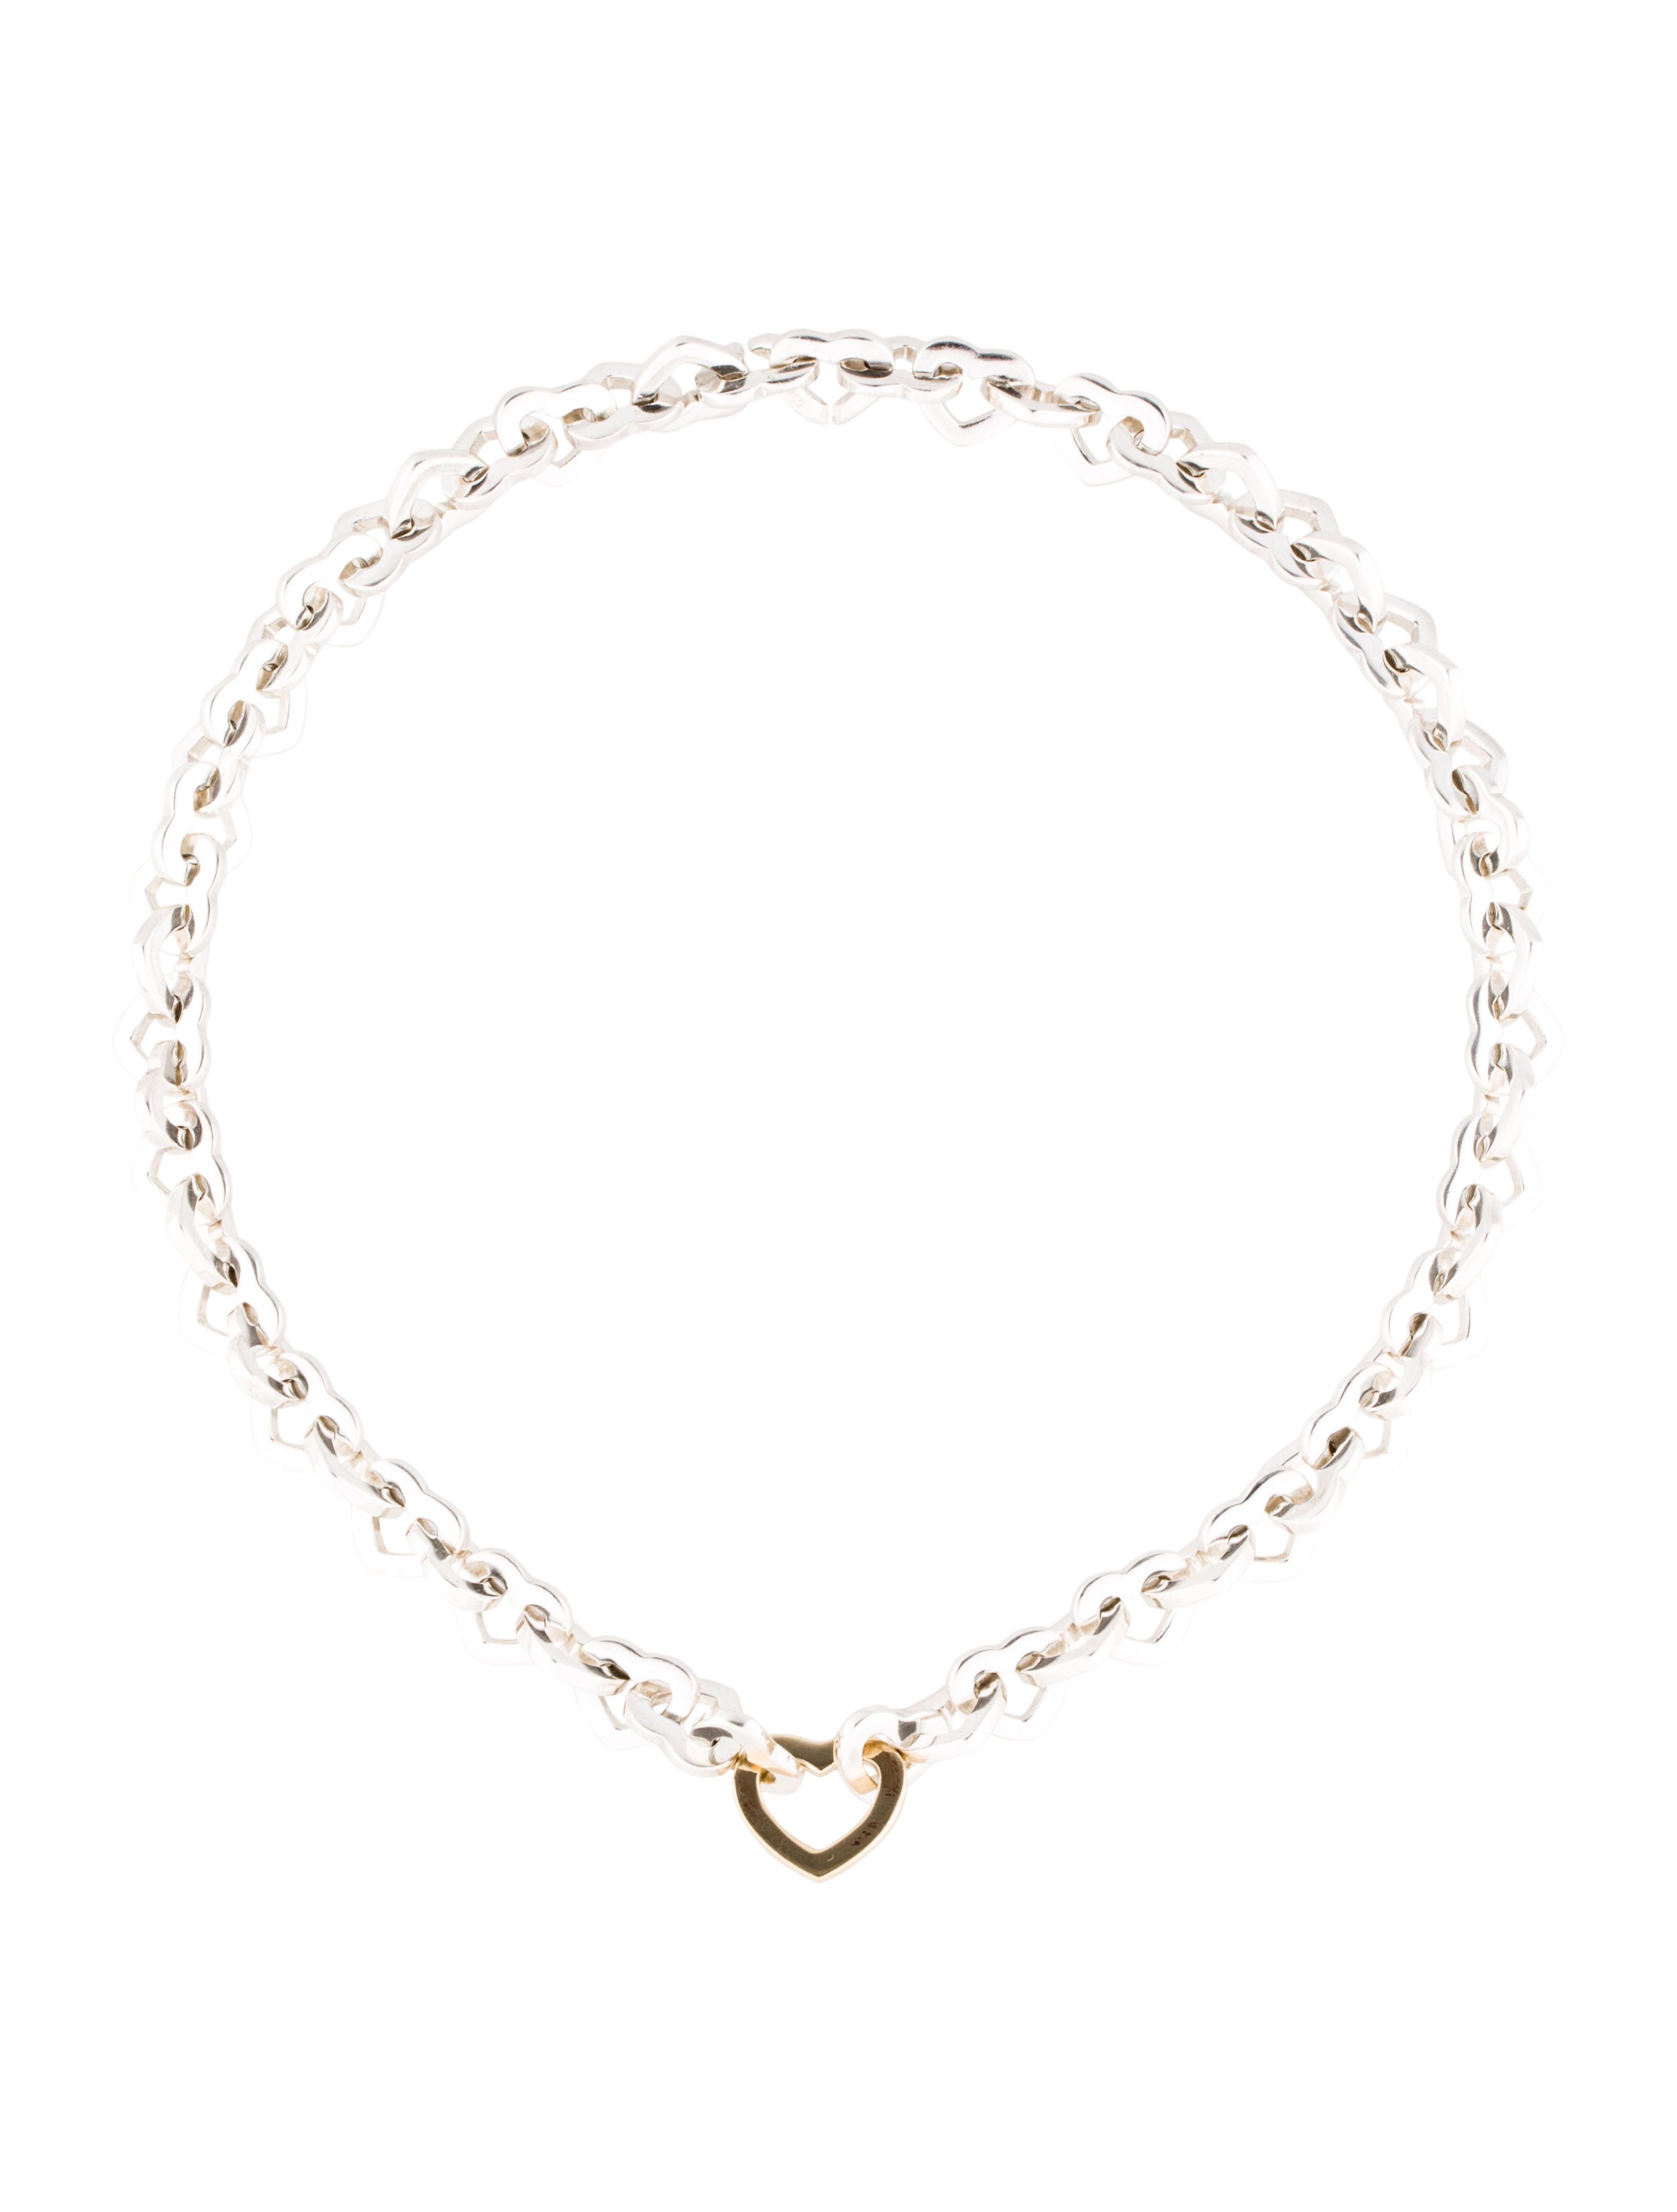 564937636 Sterling silver Tiffany & Co. heart link necklace with 18K yellow gold  accent at center and invisibile clasp closure. Note: This item has been  appraised and ...